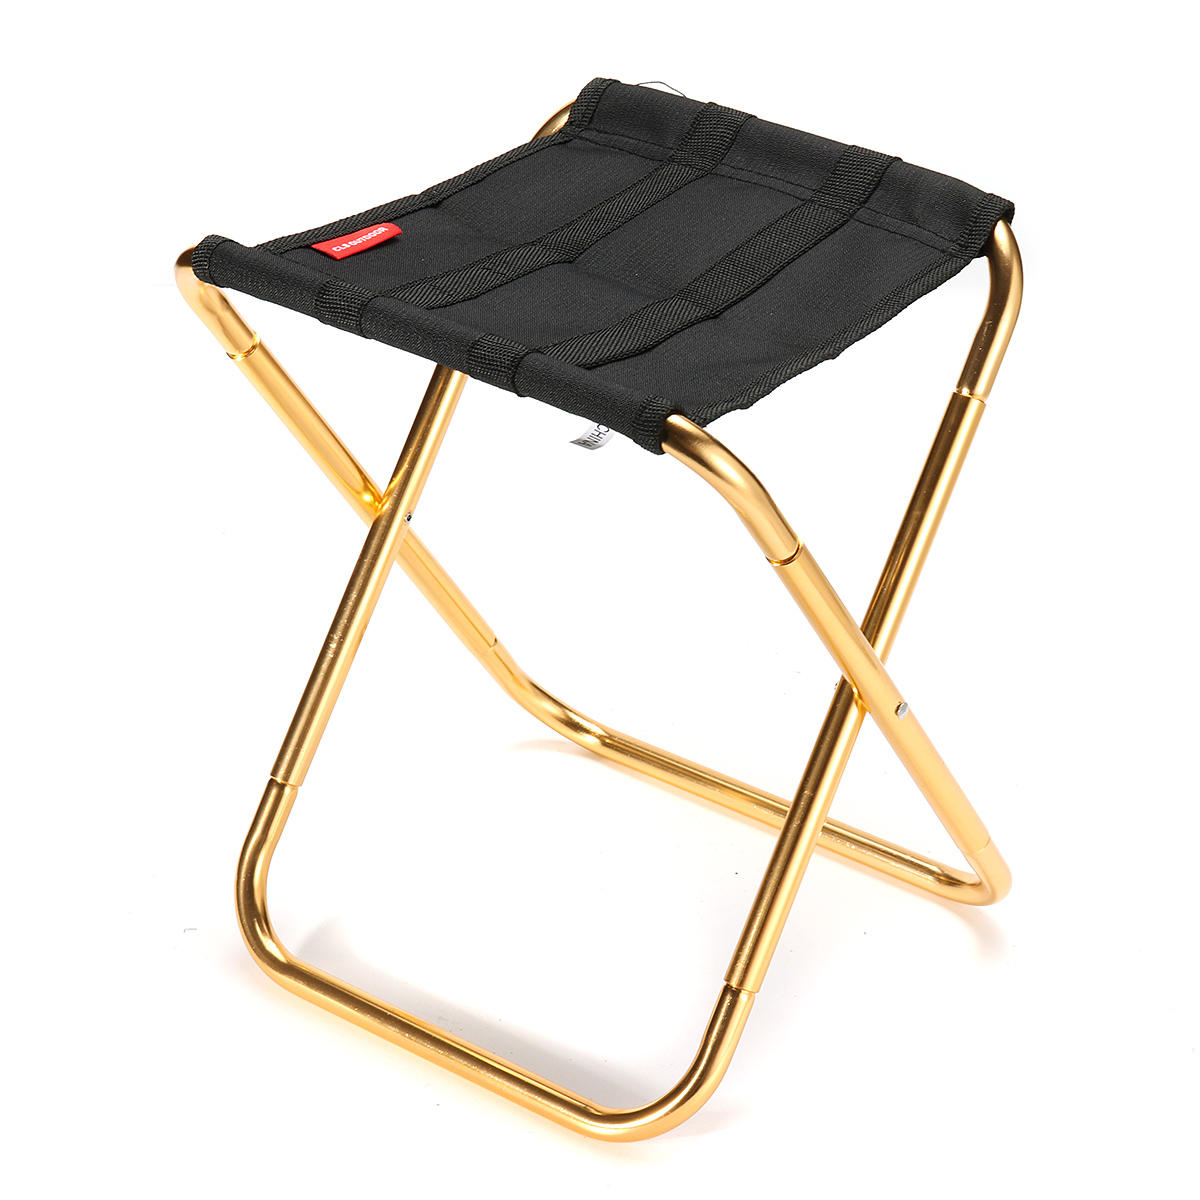 tall fishing chair club recliner outdoor ultralight folding camping portable